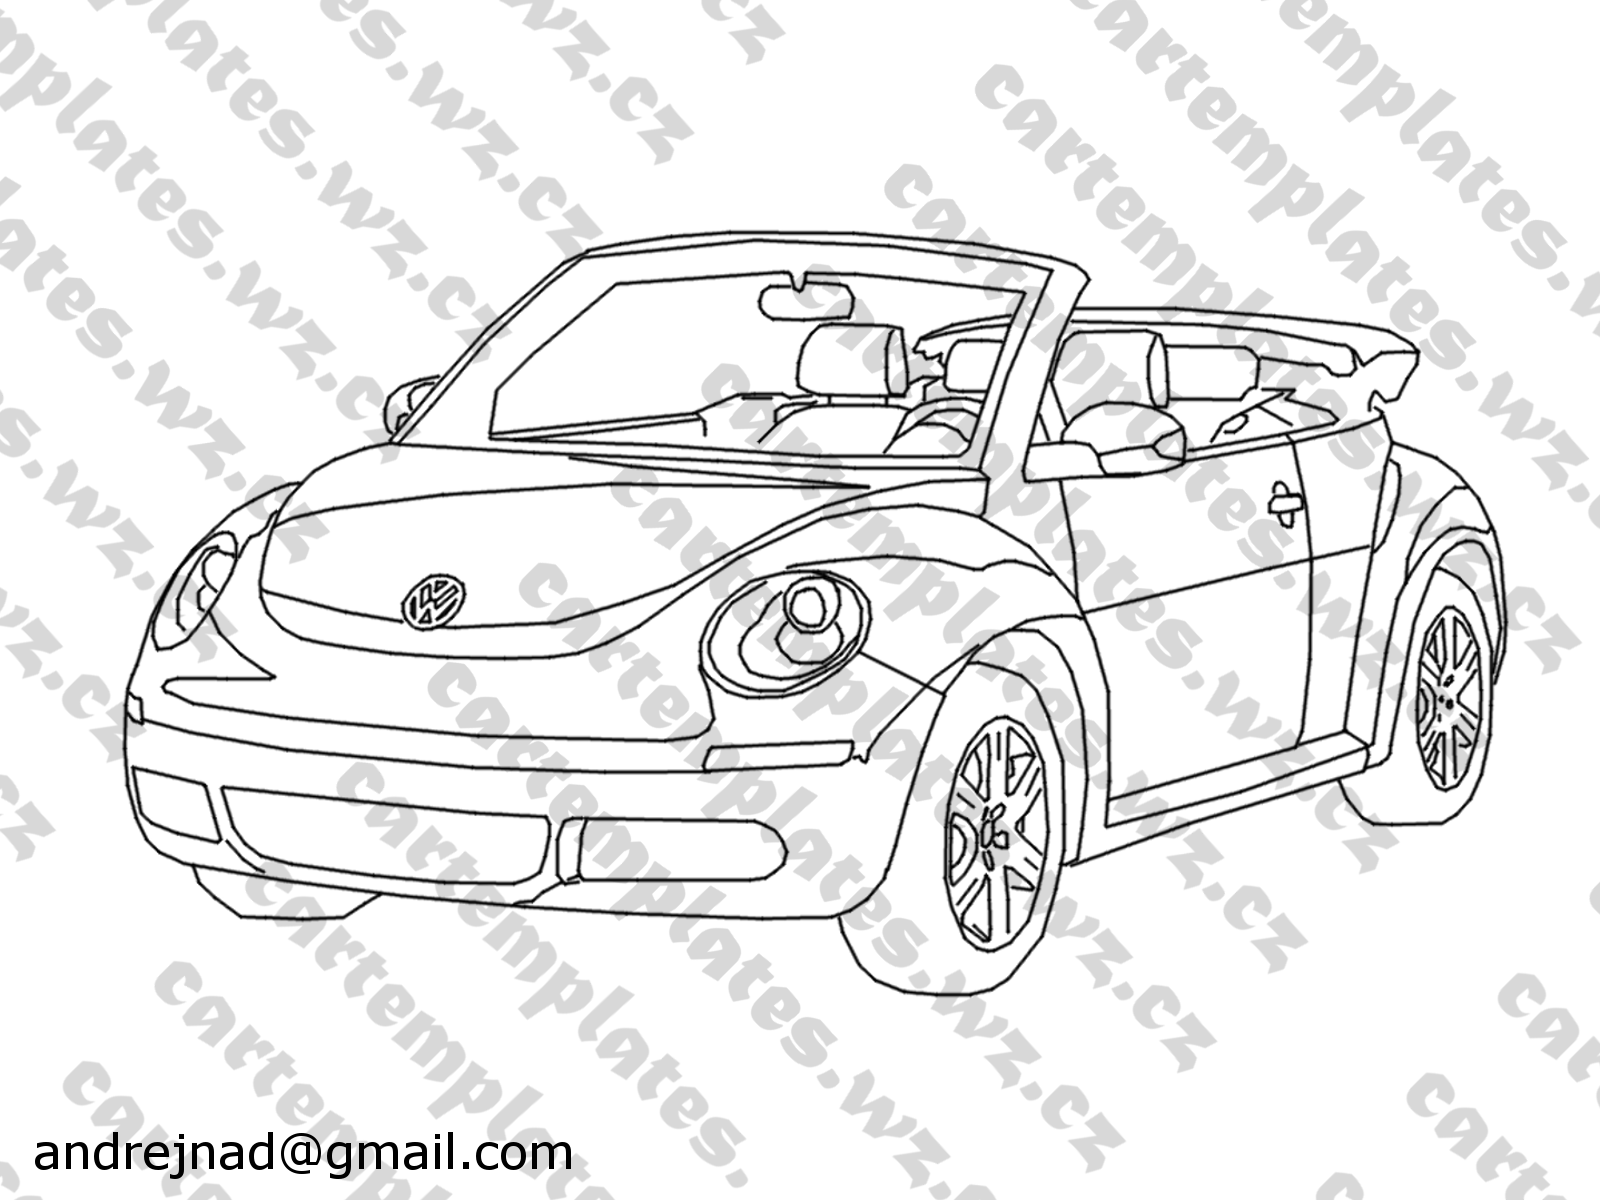 Vw Bug Drawing At Getdrawingscom Free For Personal Use Vw Bug